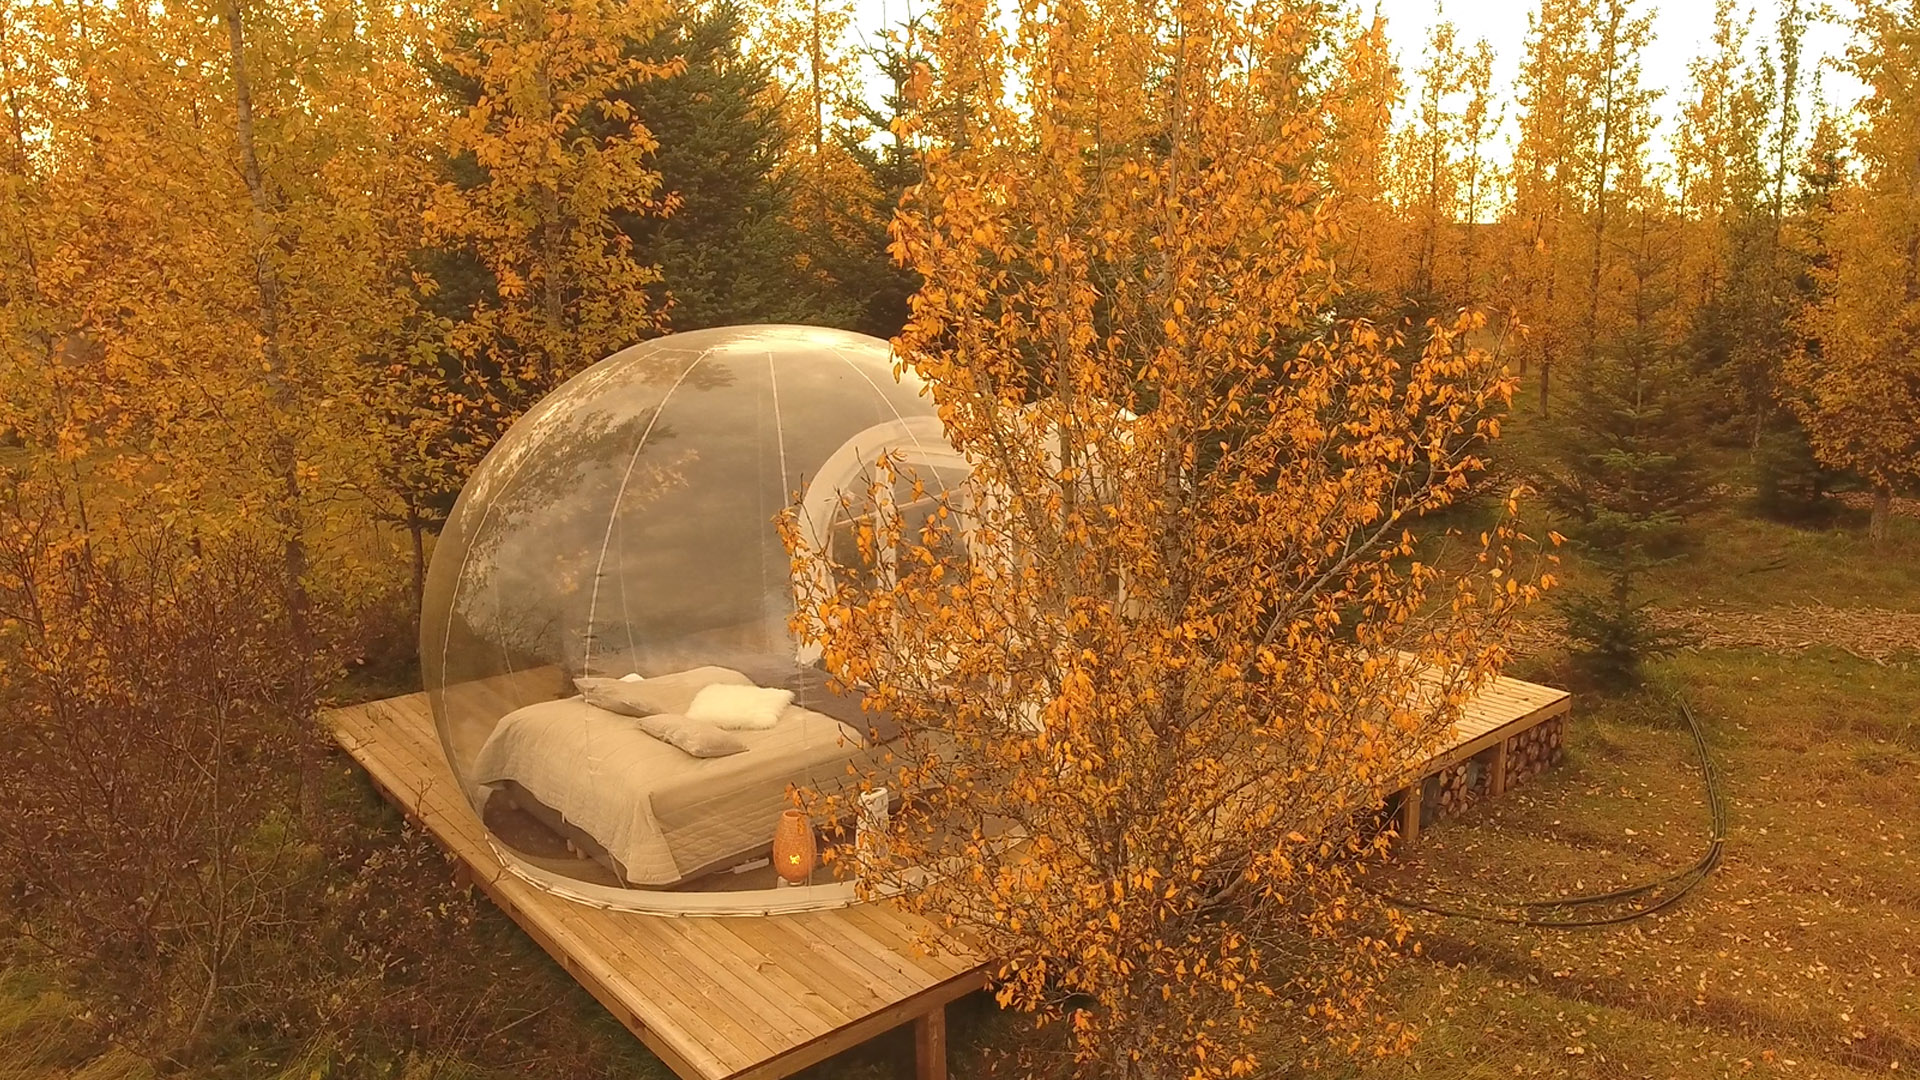 Are bubble hotels still a thing?